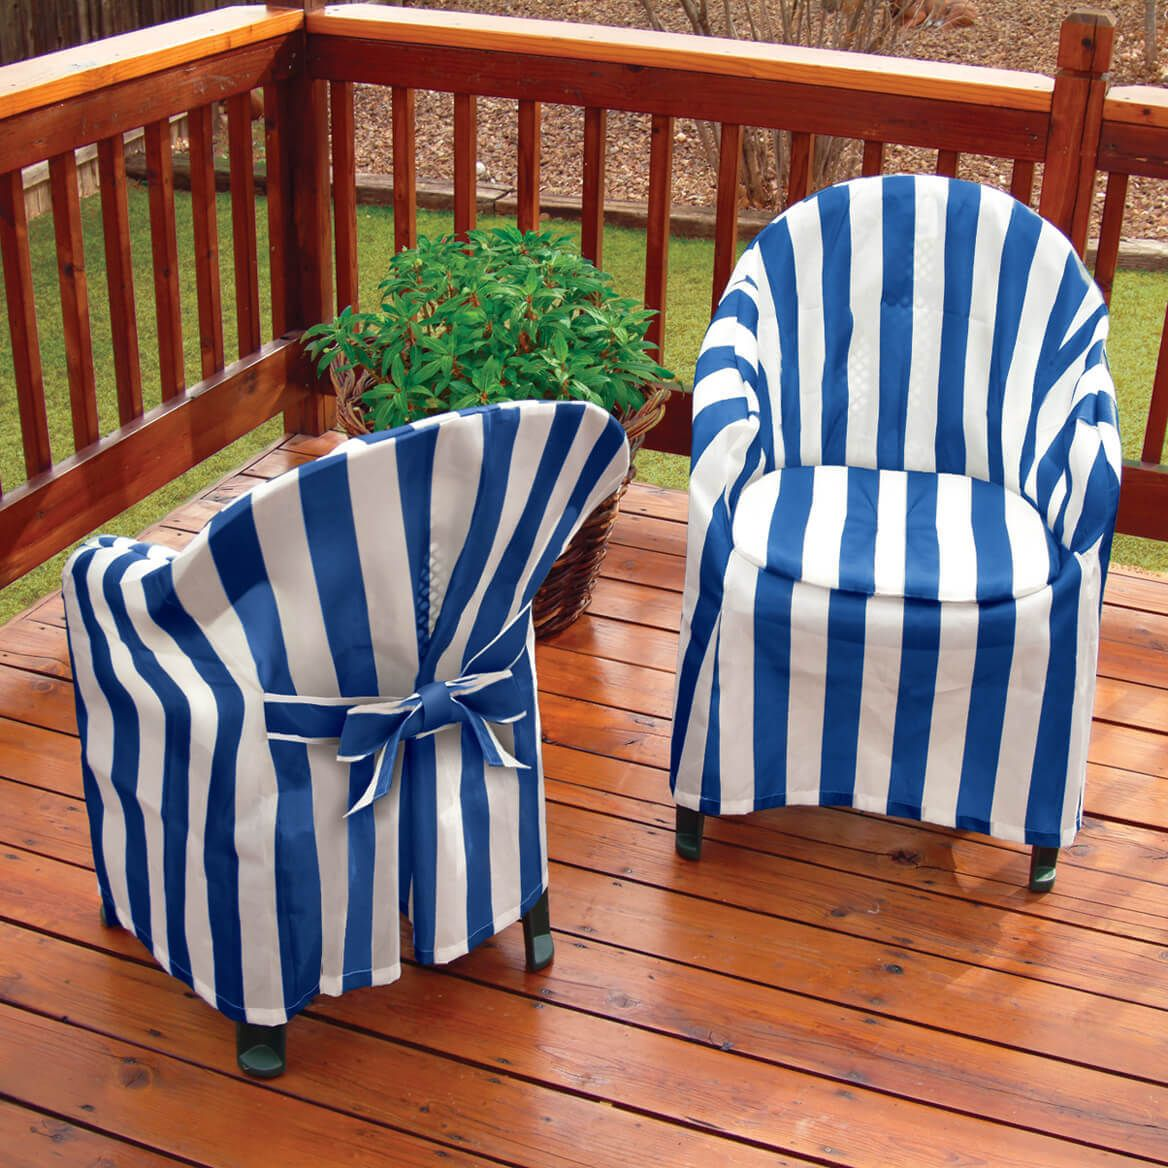 Striped Patio Chair Cover with Cushion-348757